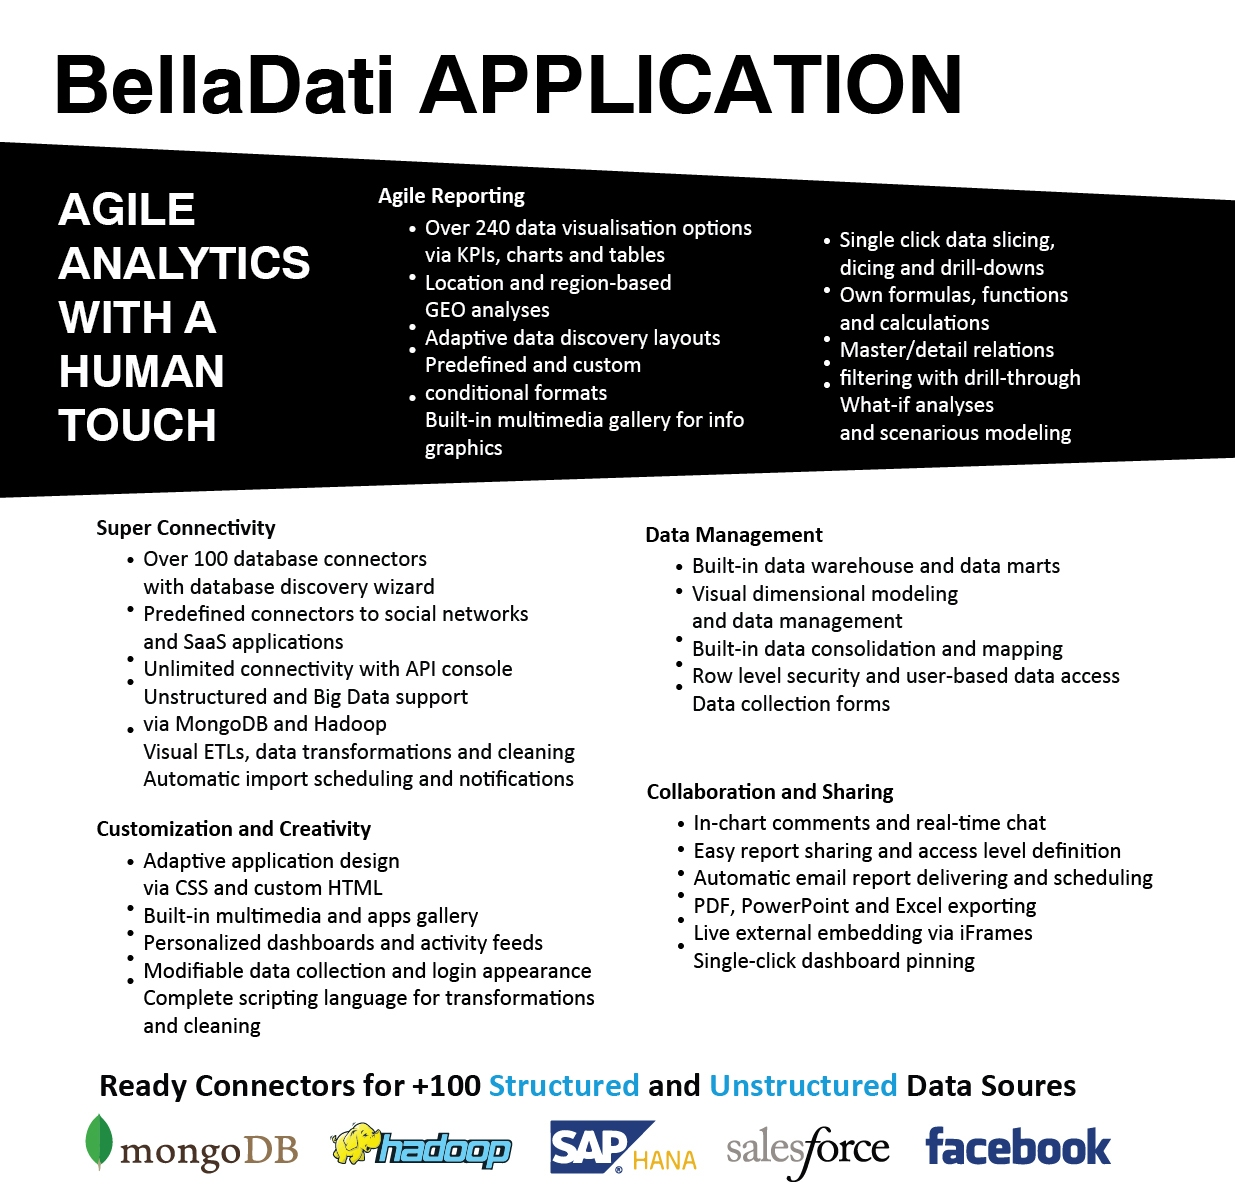 Ecnet supply chain solutions enterprise solutions retail turned into eye catching dashboards belladati offering includes both on premise and cloud bi application platform native mobile apps and bellaapps nvjuhfo Image collections